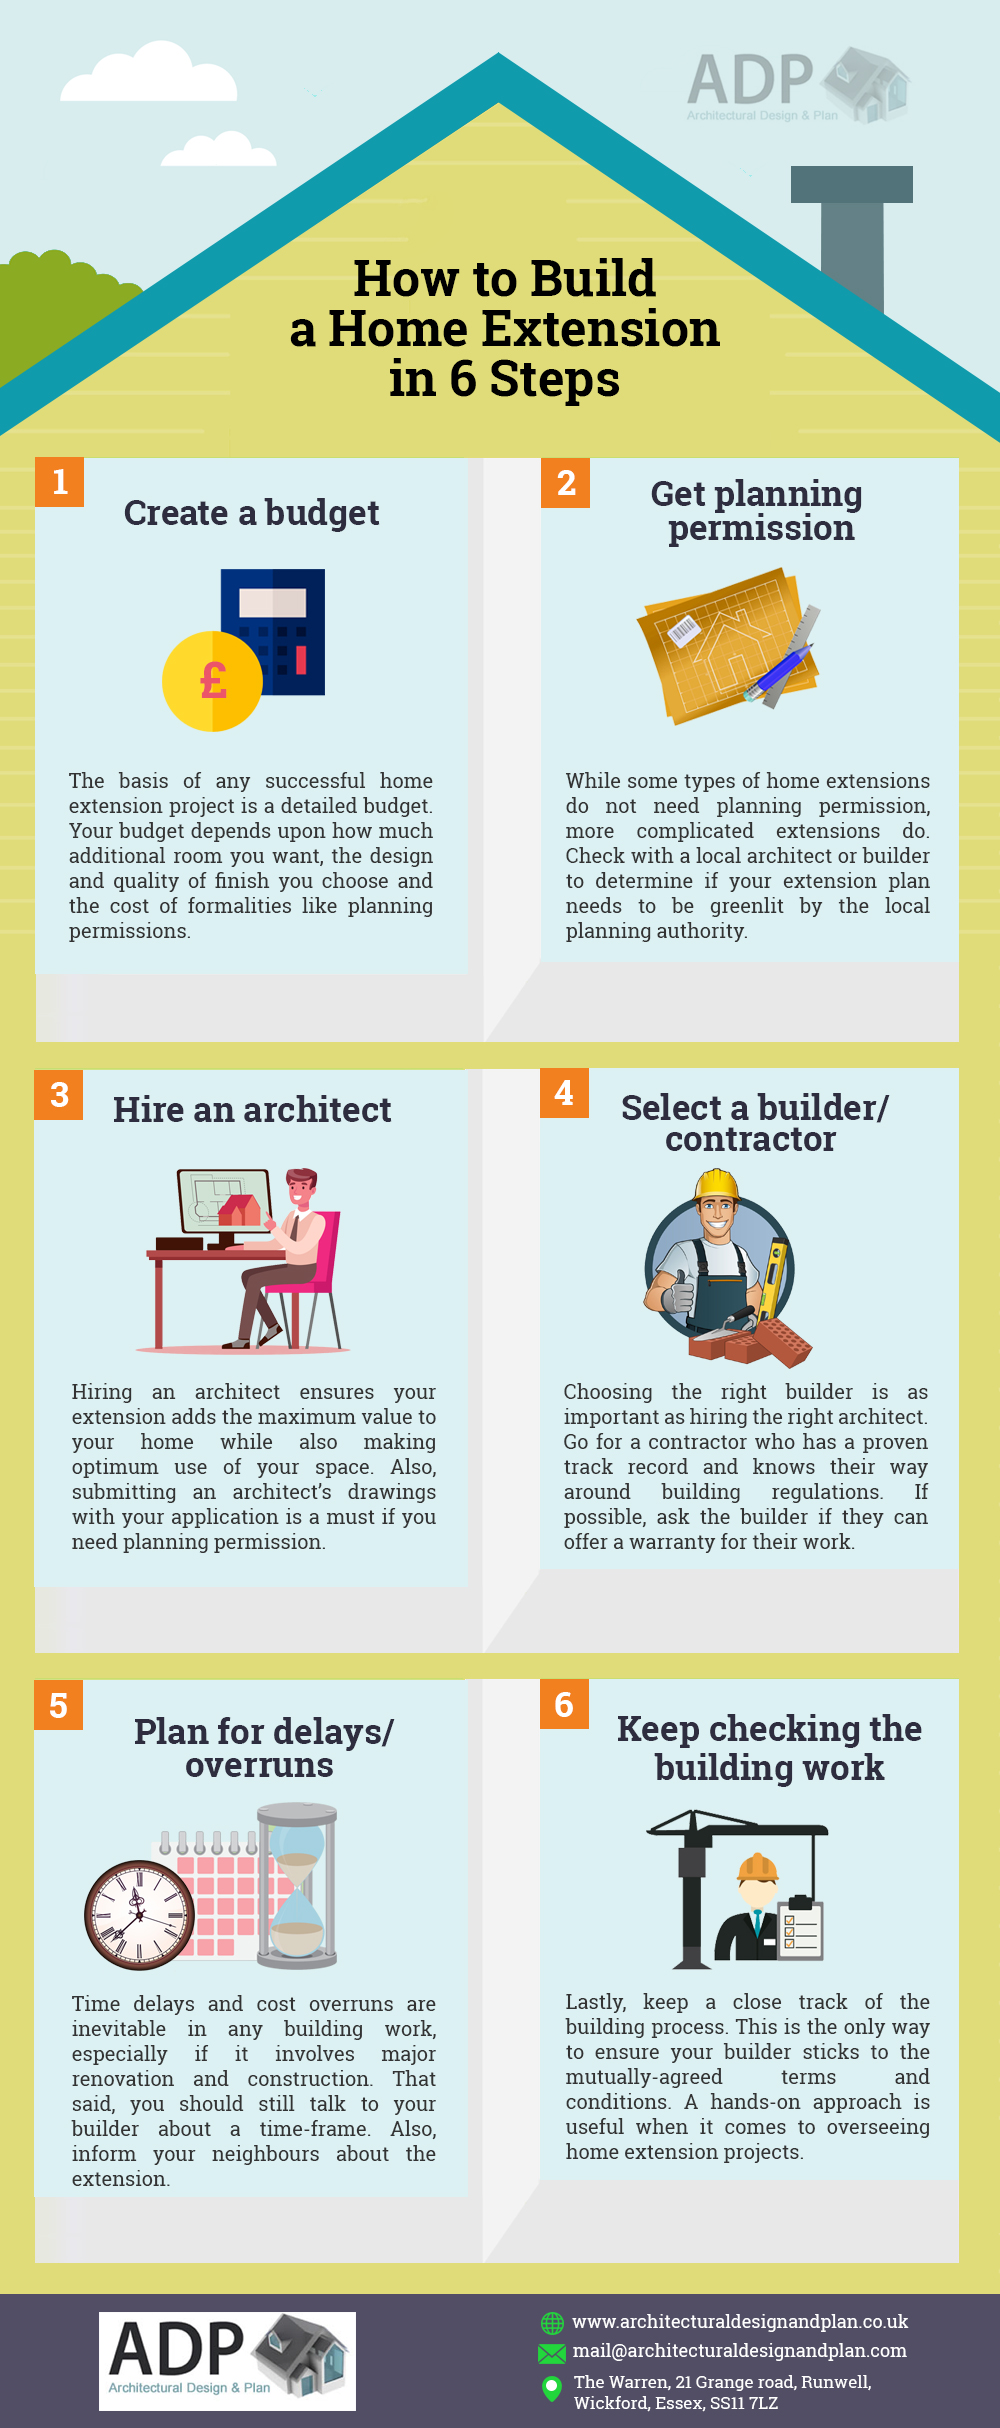 Build a Home Extension infographic